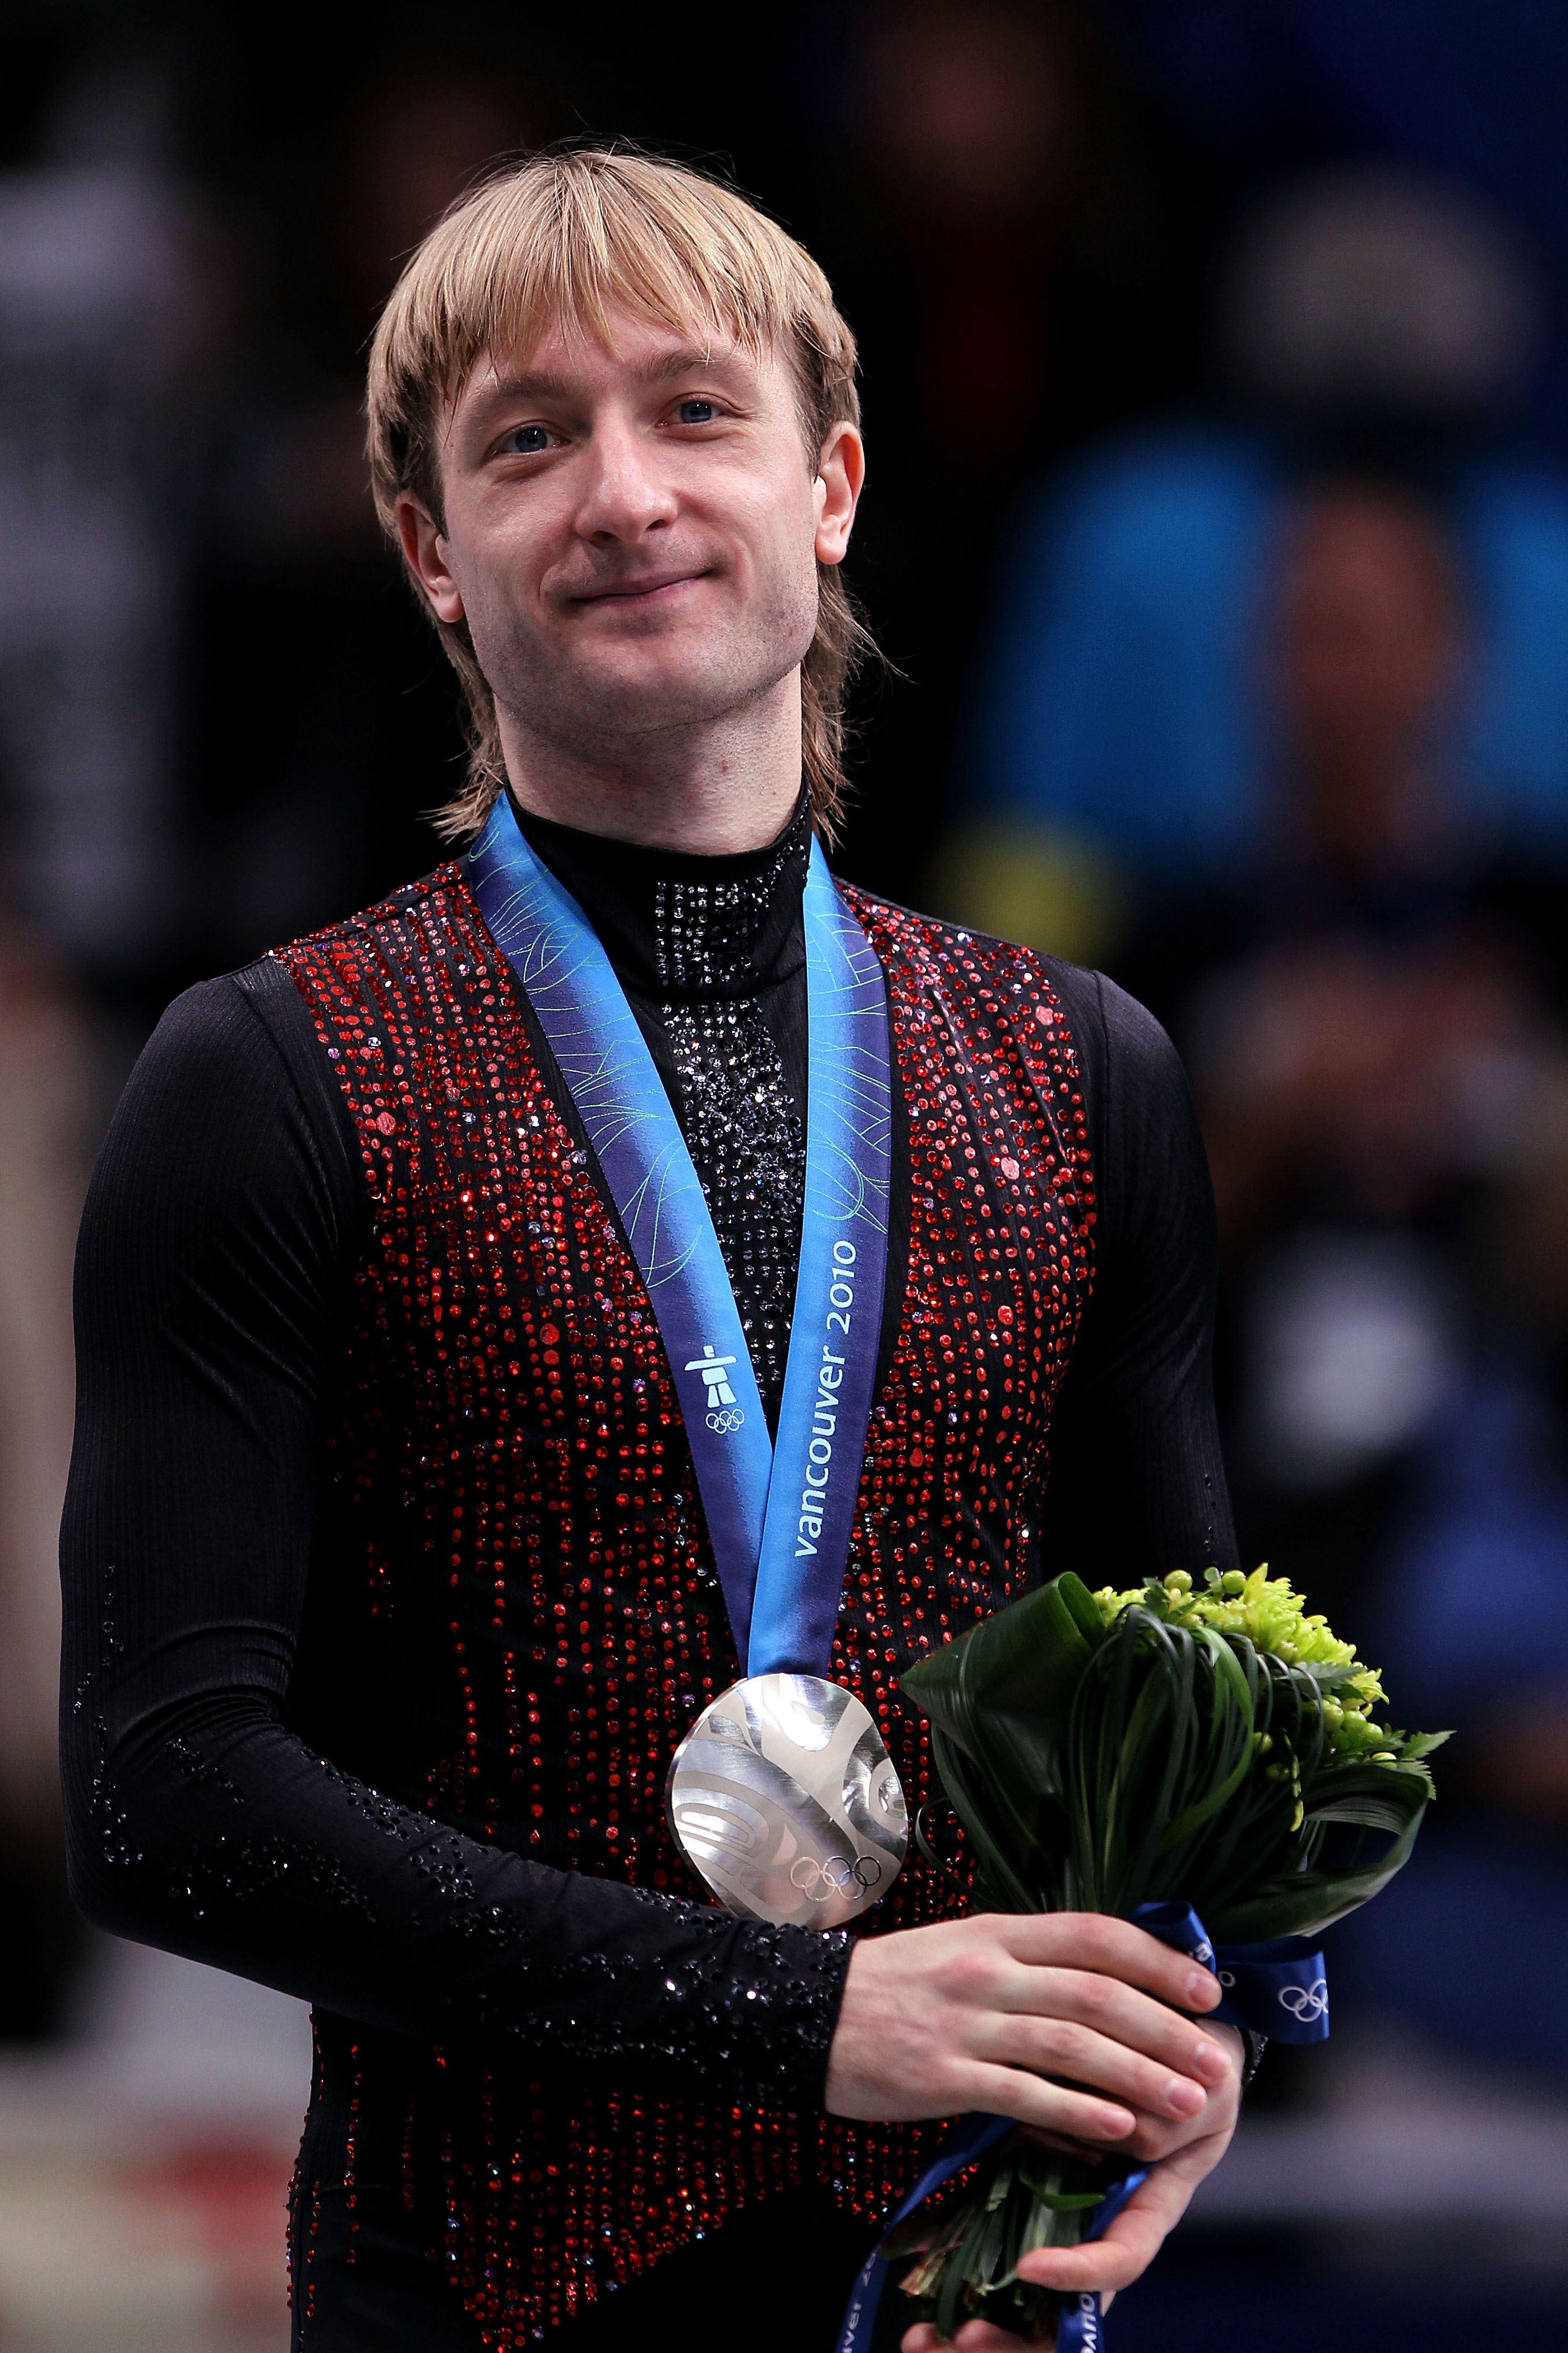 VANCOUVER, BC - FEBRUARY 18:  Silver medalist Evgeni Plushenko of Russia looks on in the men's figure skating free skating on day 7 of the Vancouver 2010 Winter Olympics at the Pacific Coliseum on February 18, 2010 in Vancouver, Canada.  (Photo by Matthew